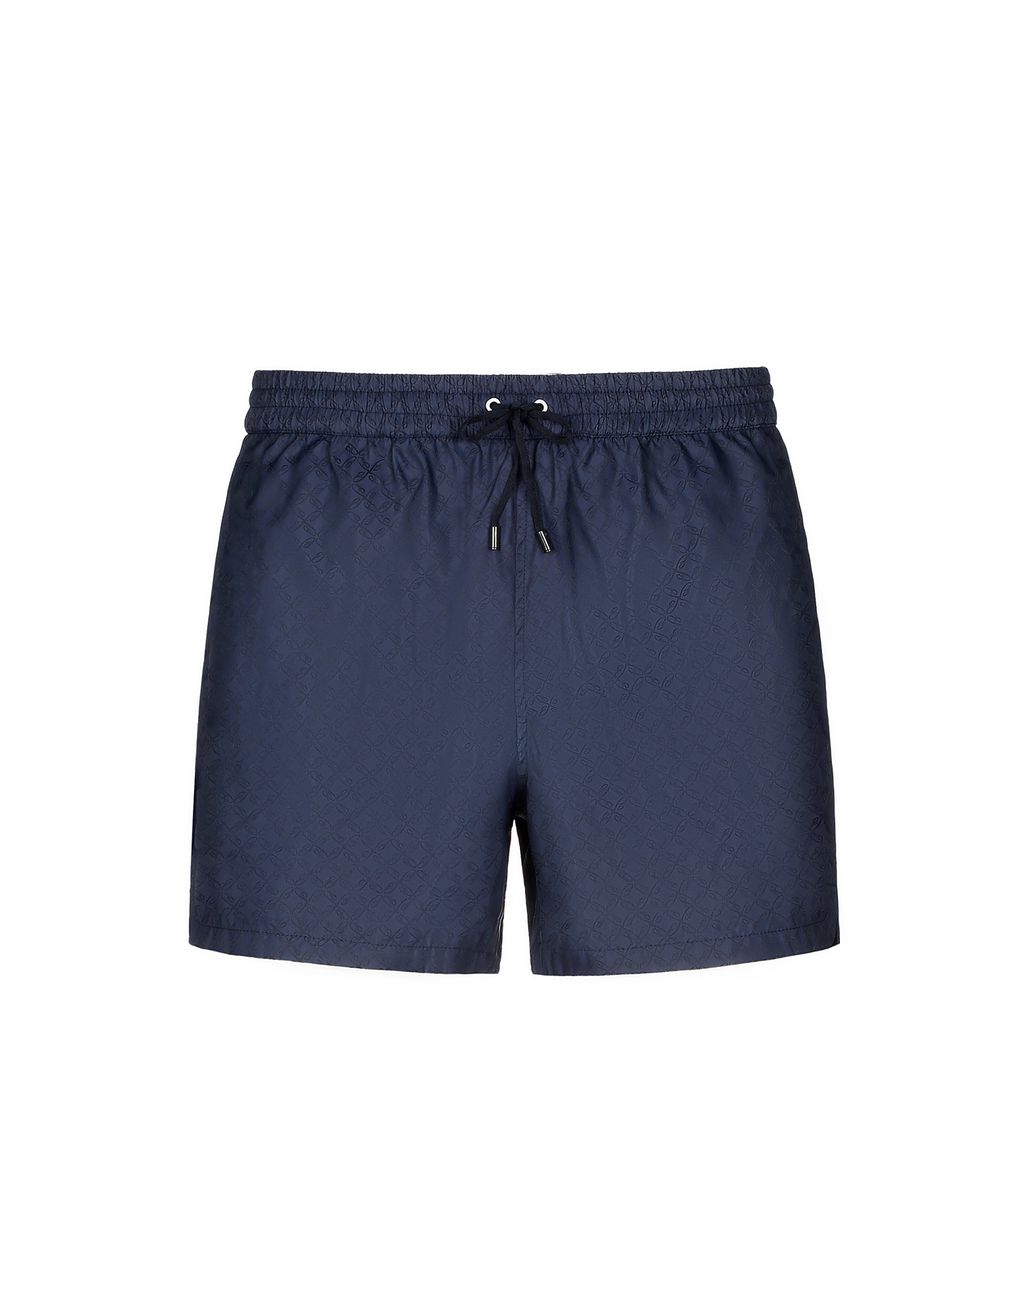 BRIONI Navy Blue Logo Short Swims Short Beachwear Man f